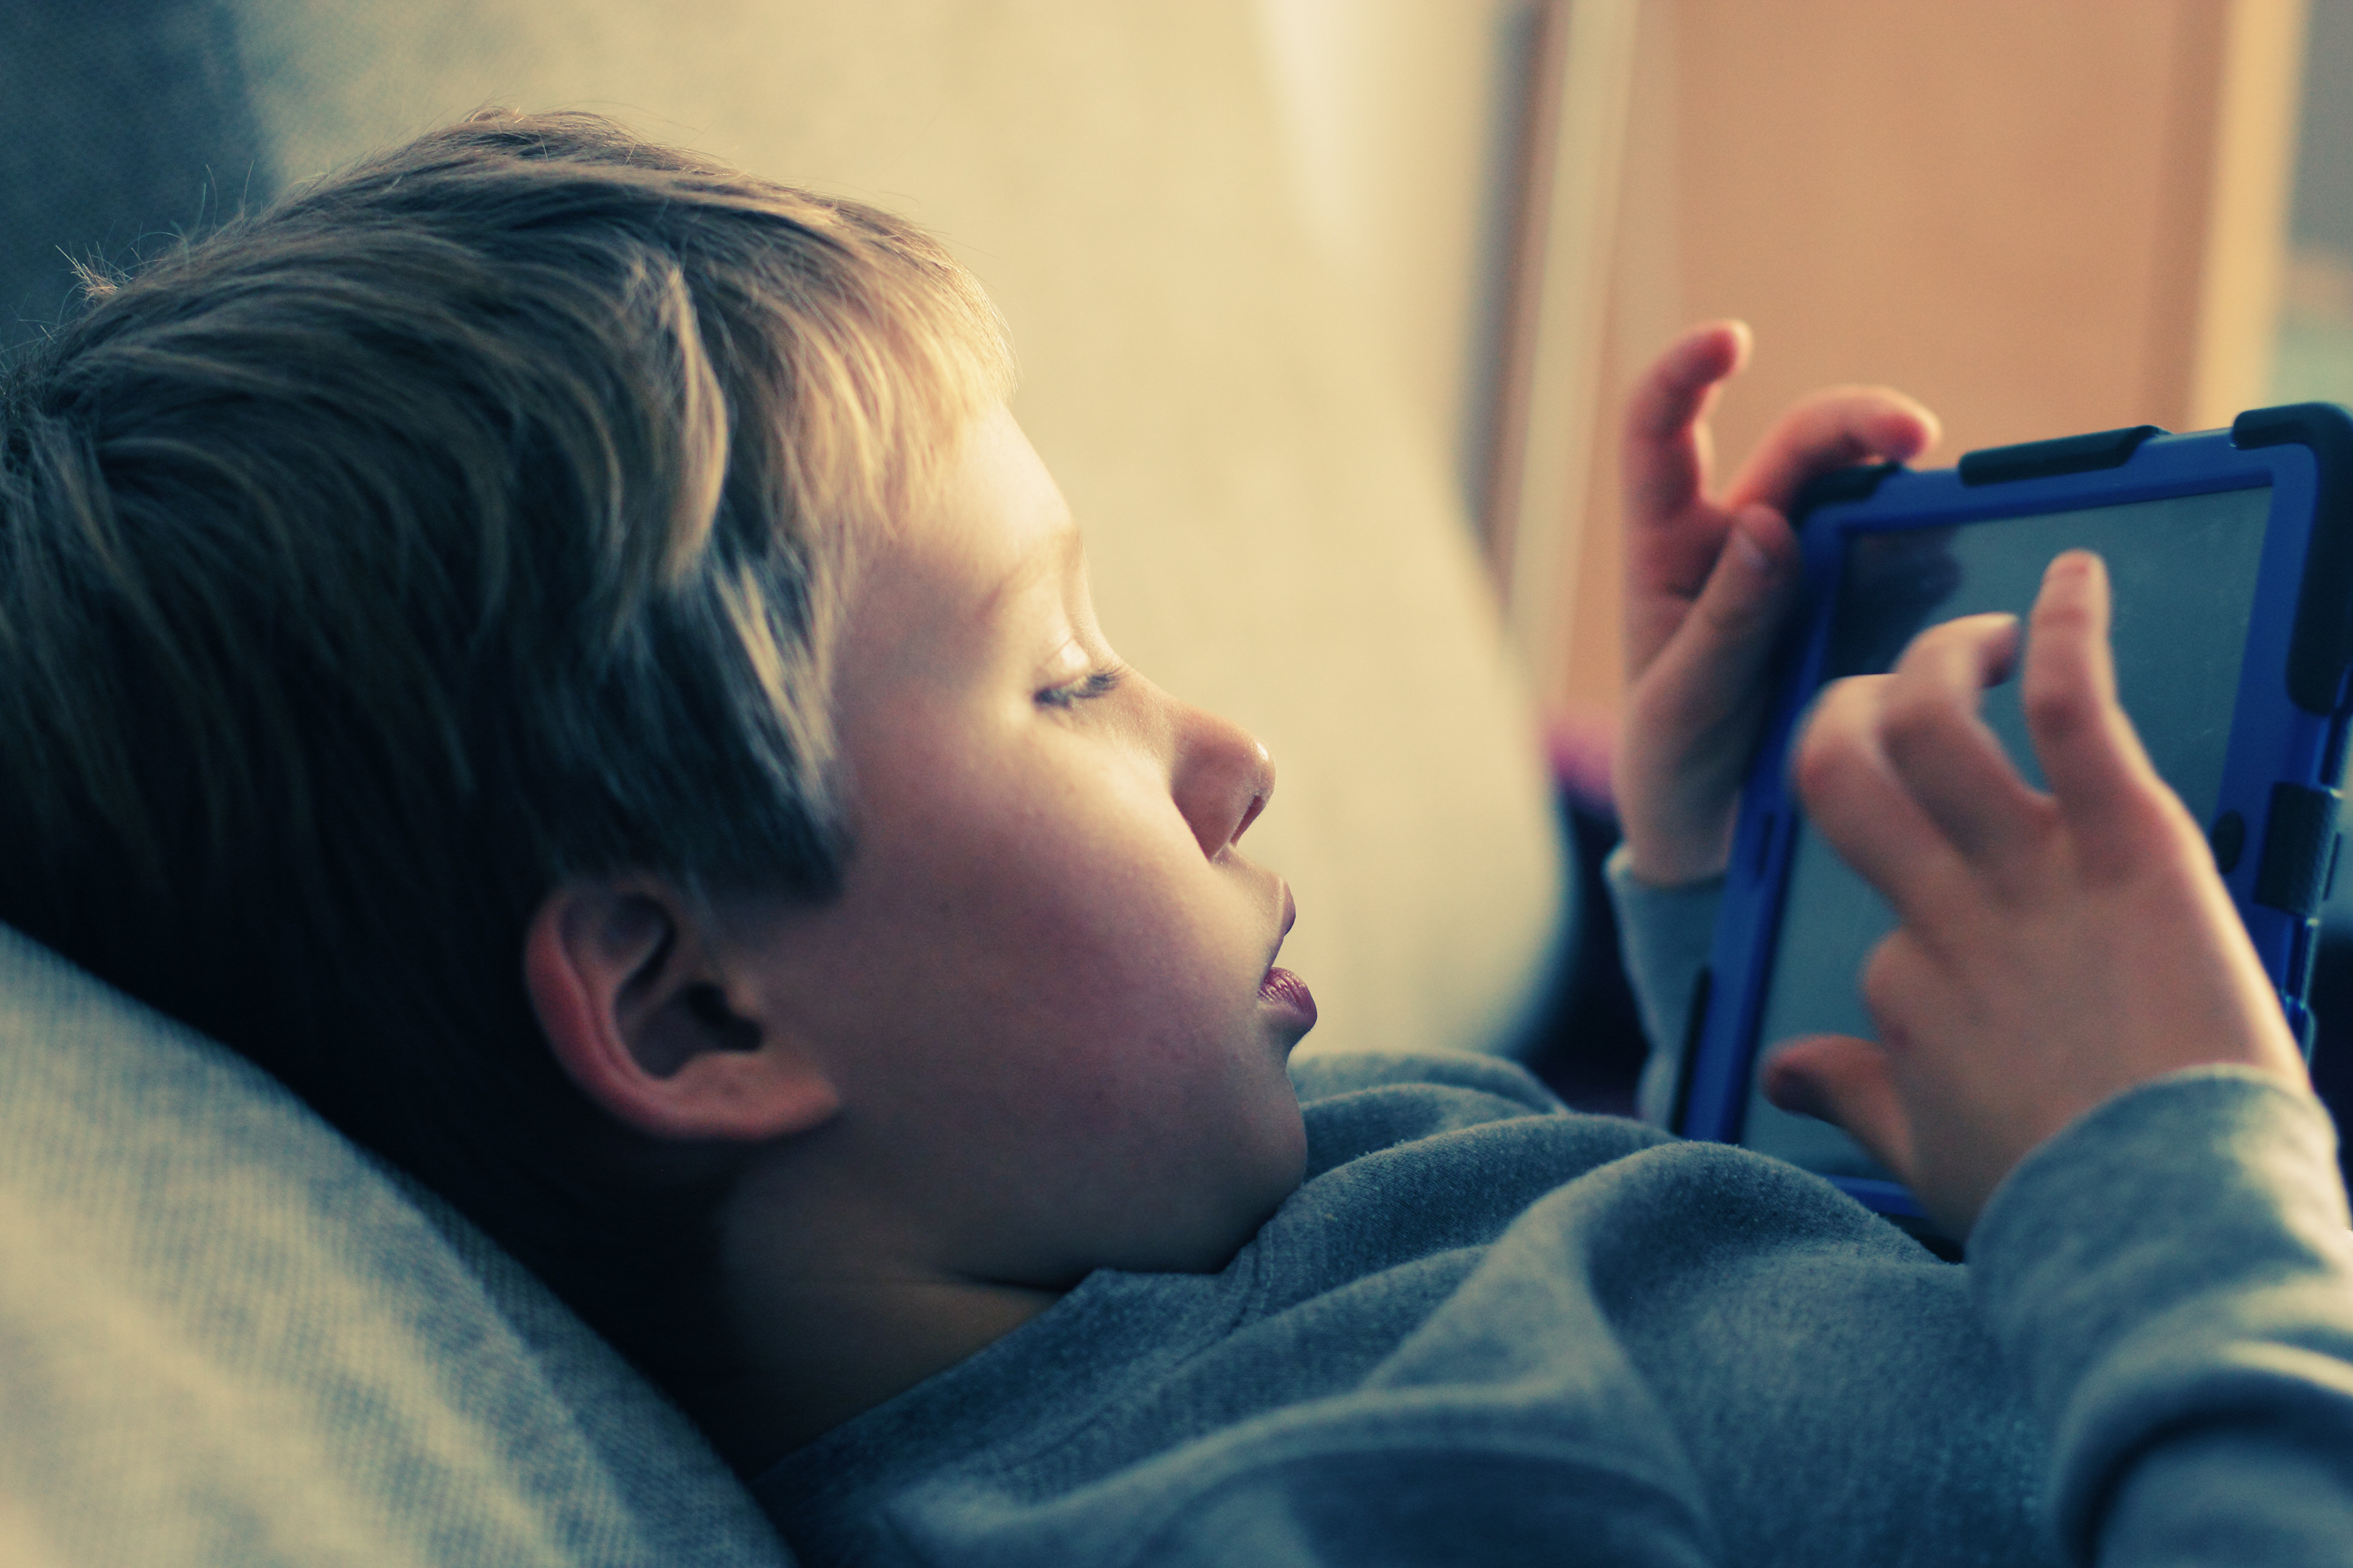 Computer game could help adolescents with autism improve